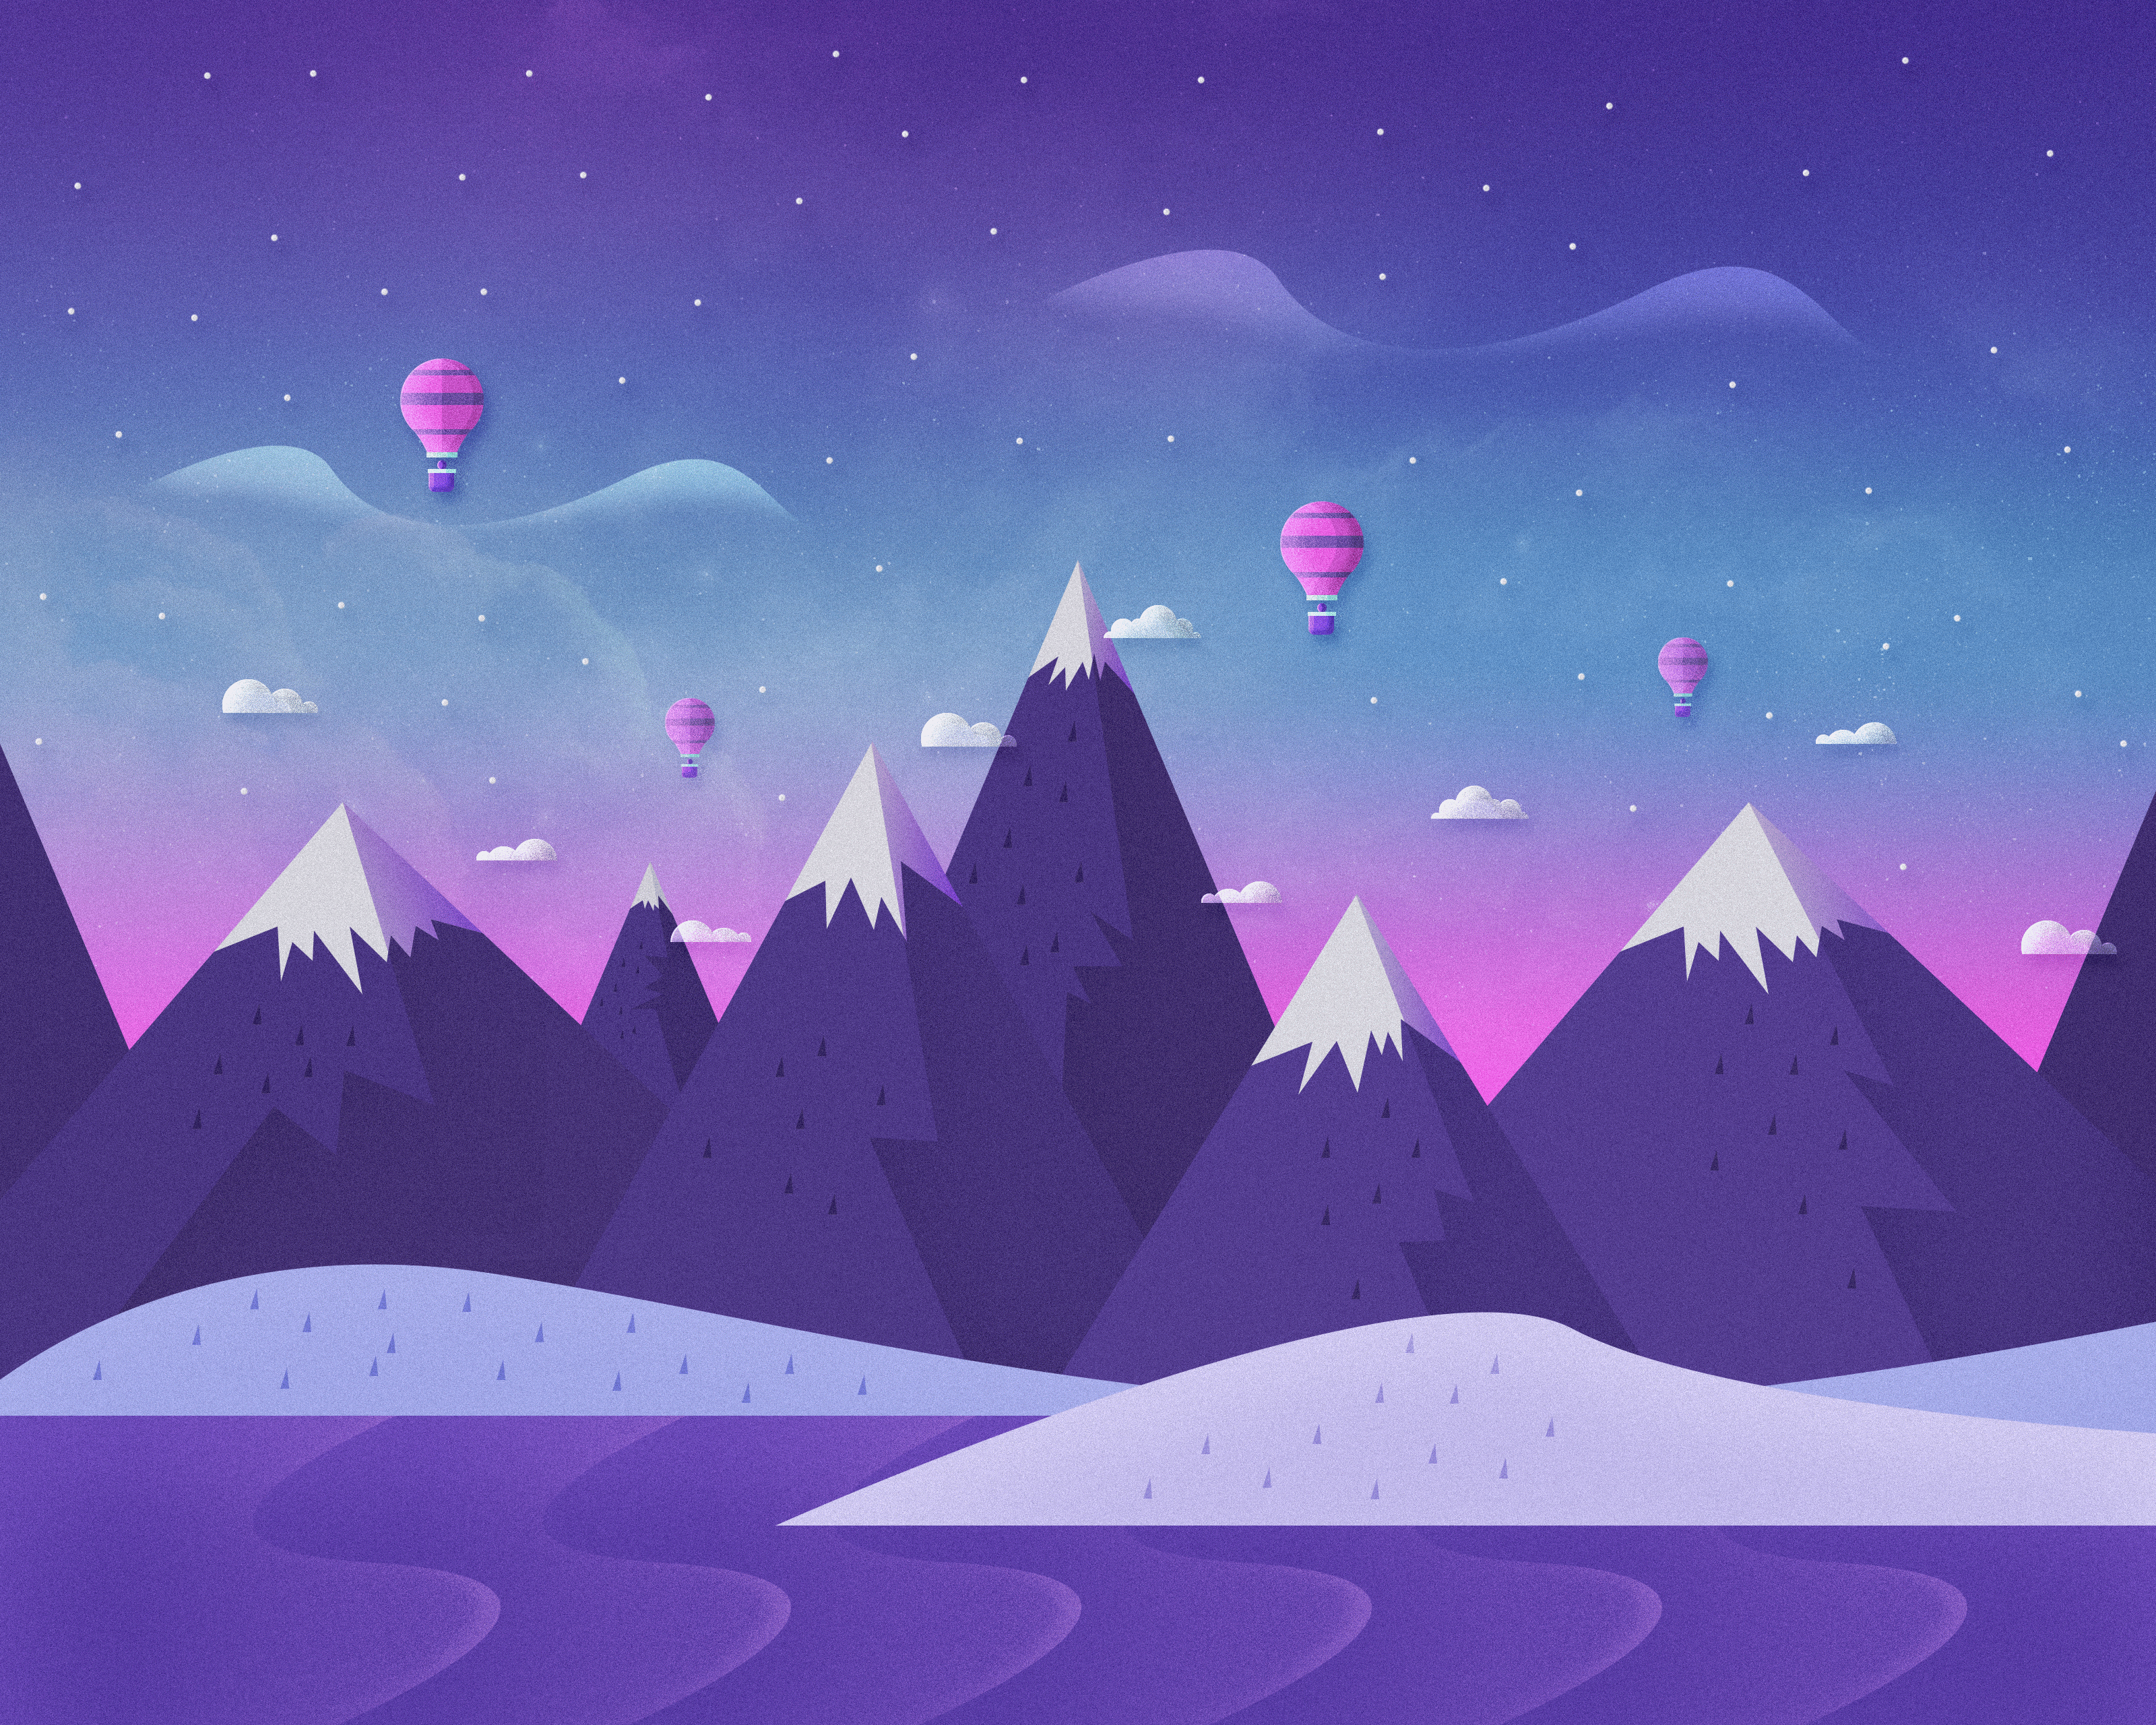 Wallpaper Wednesday: Animated Landscapes.